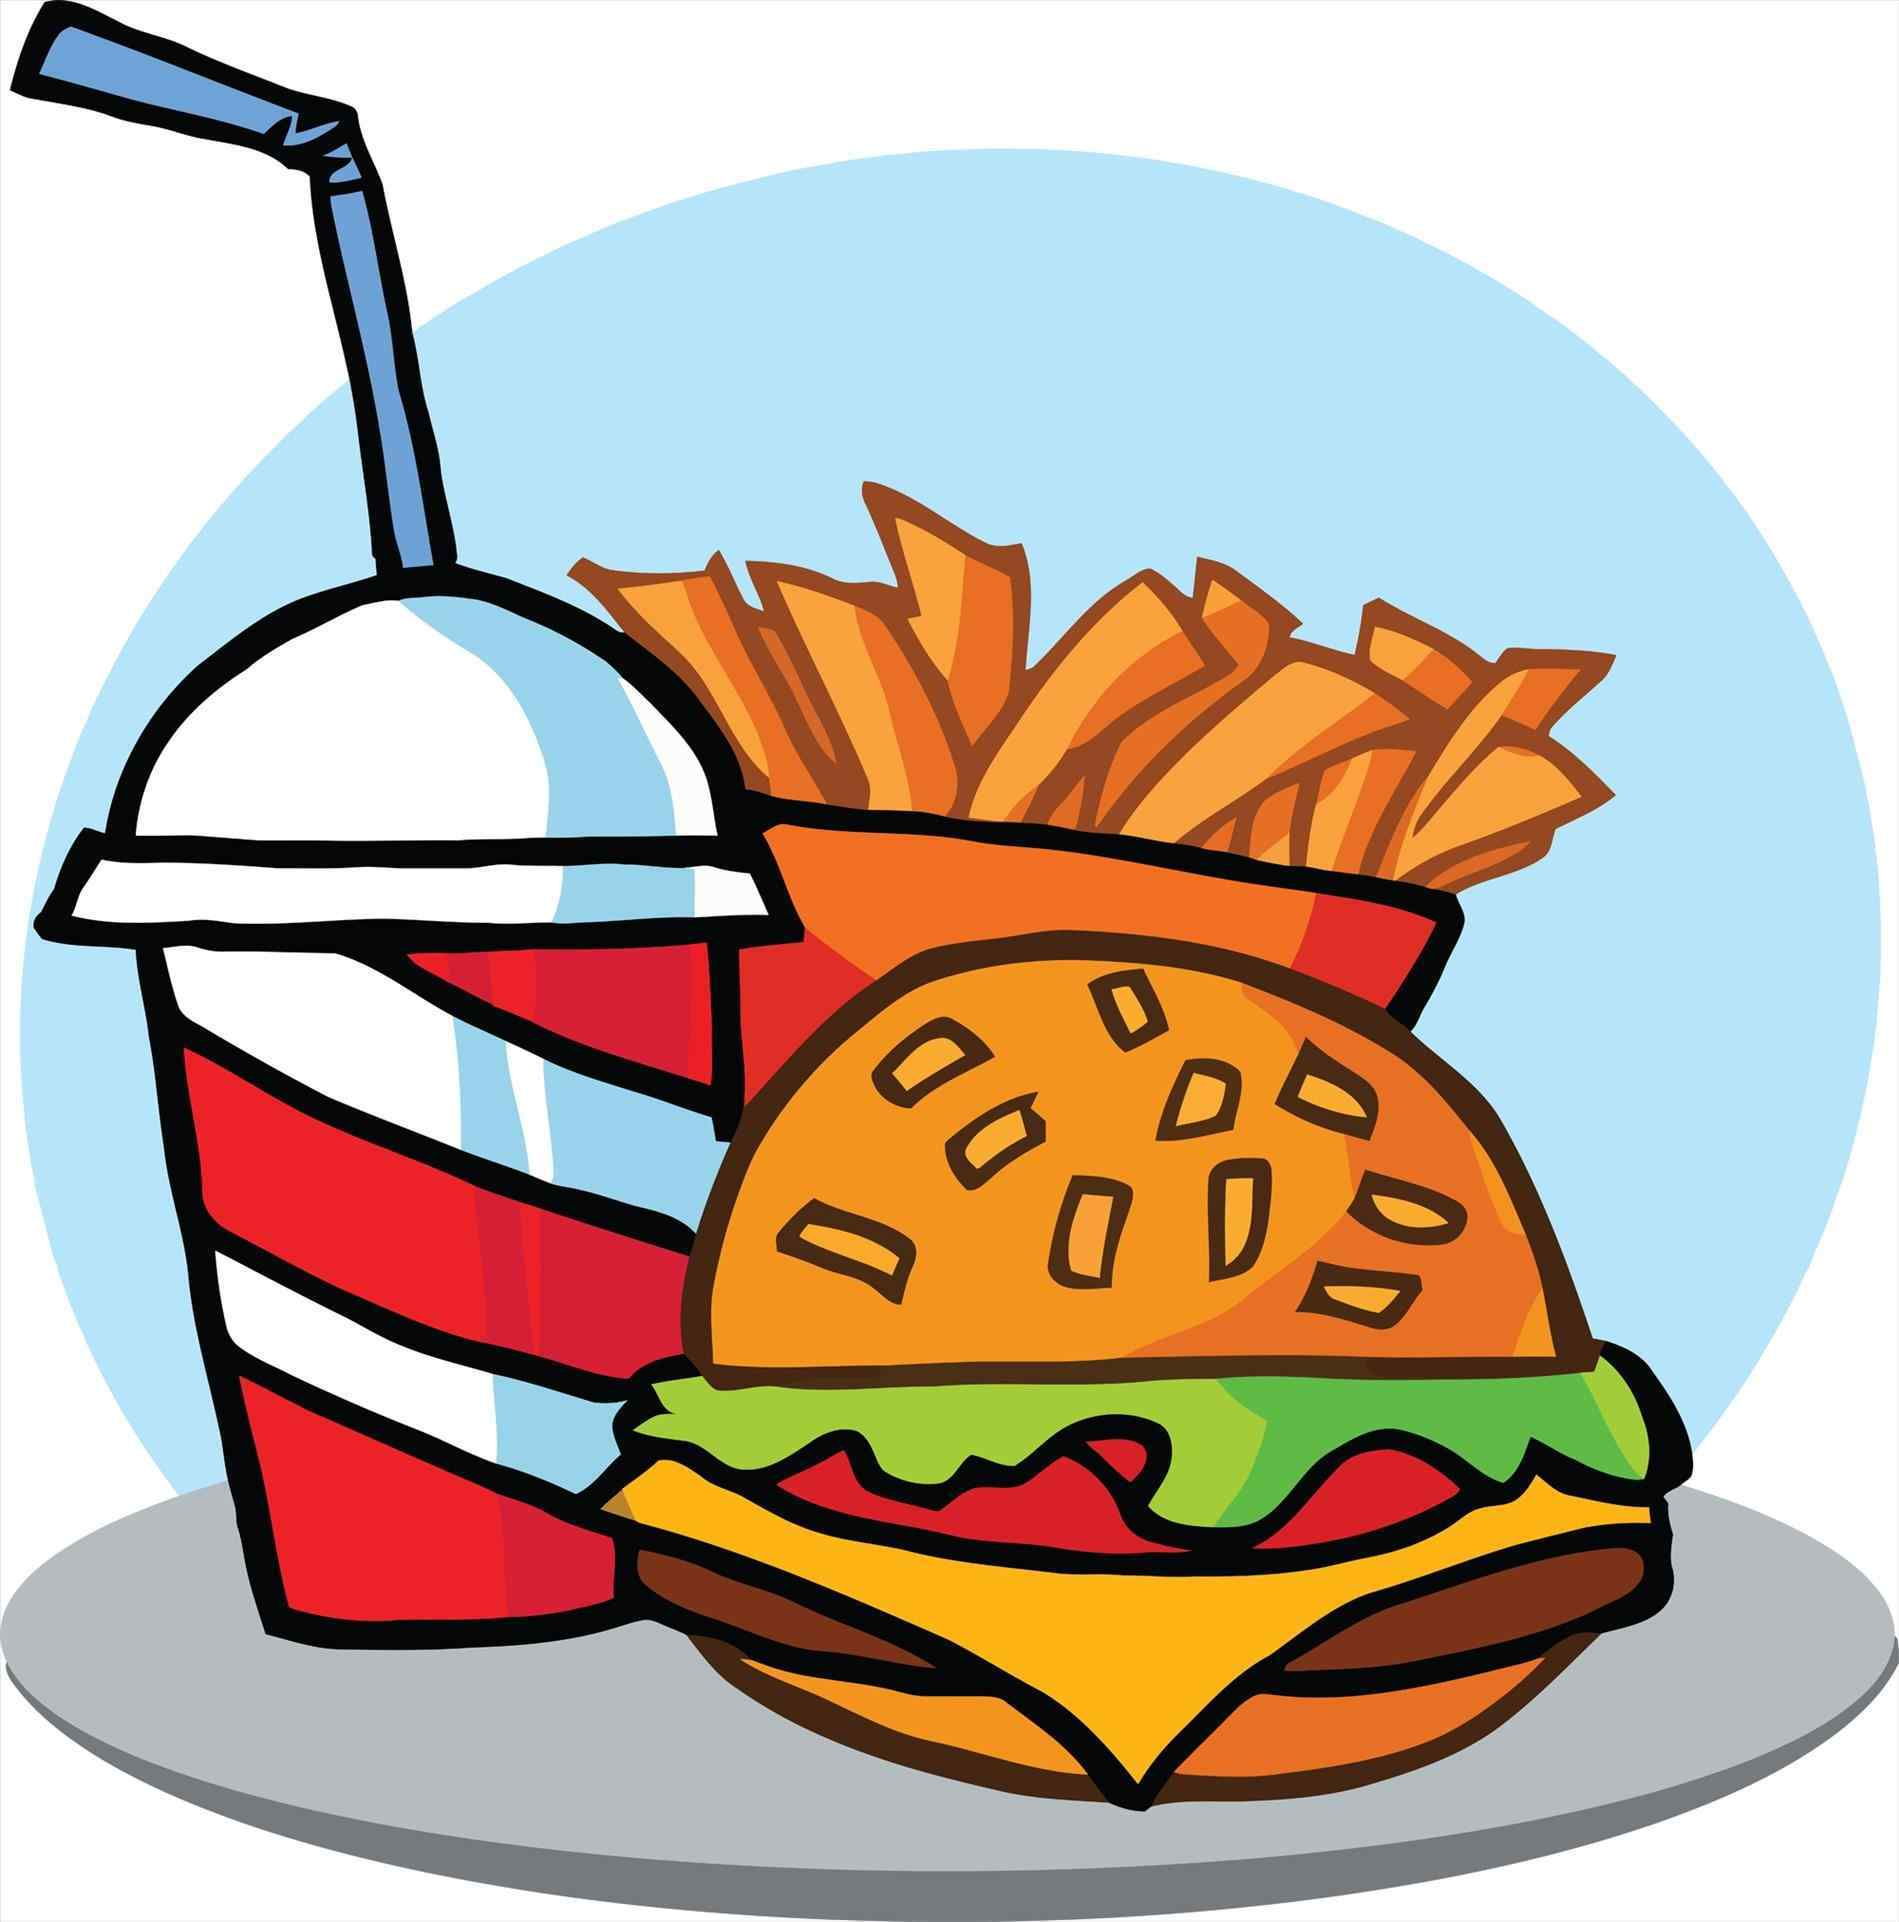 clipart of fast food at getdrawings com free for personal use rh getdrawings com fast food worker clipart fast foods clip art